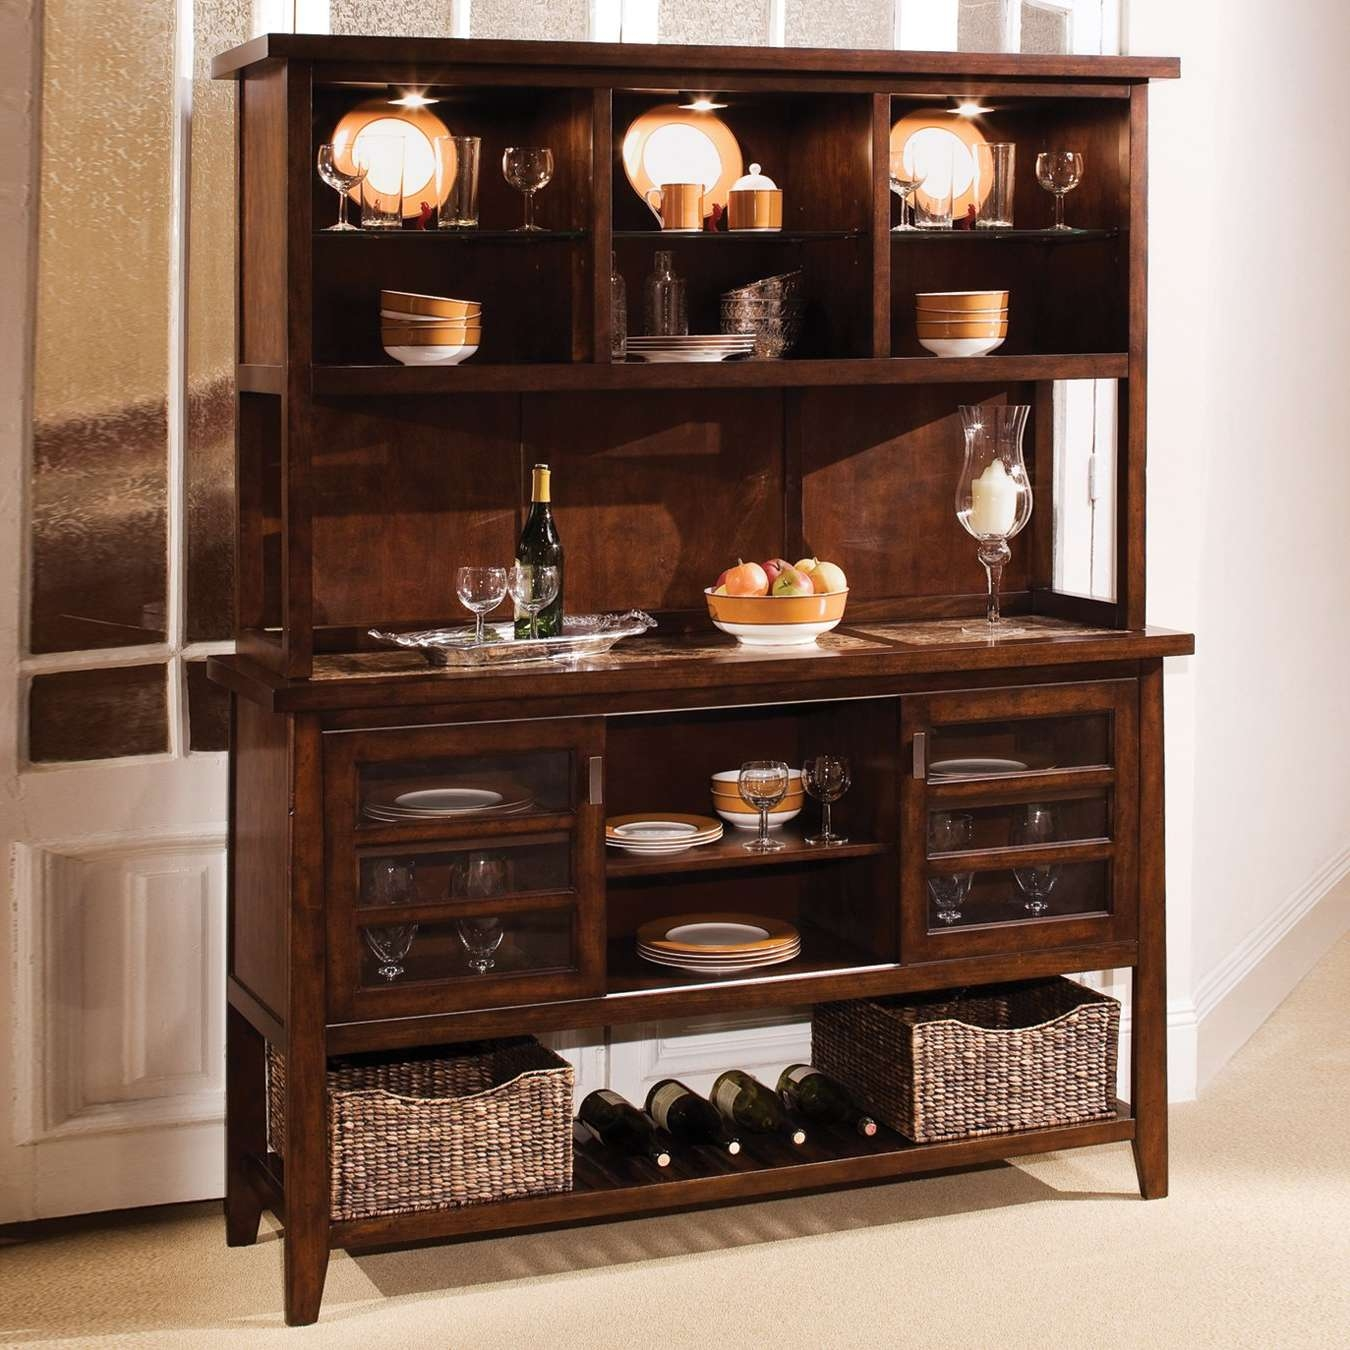 Sideboards: Extraordinary Kitchen Sideboards And Buffets Antique With Buffets And Sideboards (View 19 of 20)